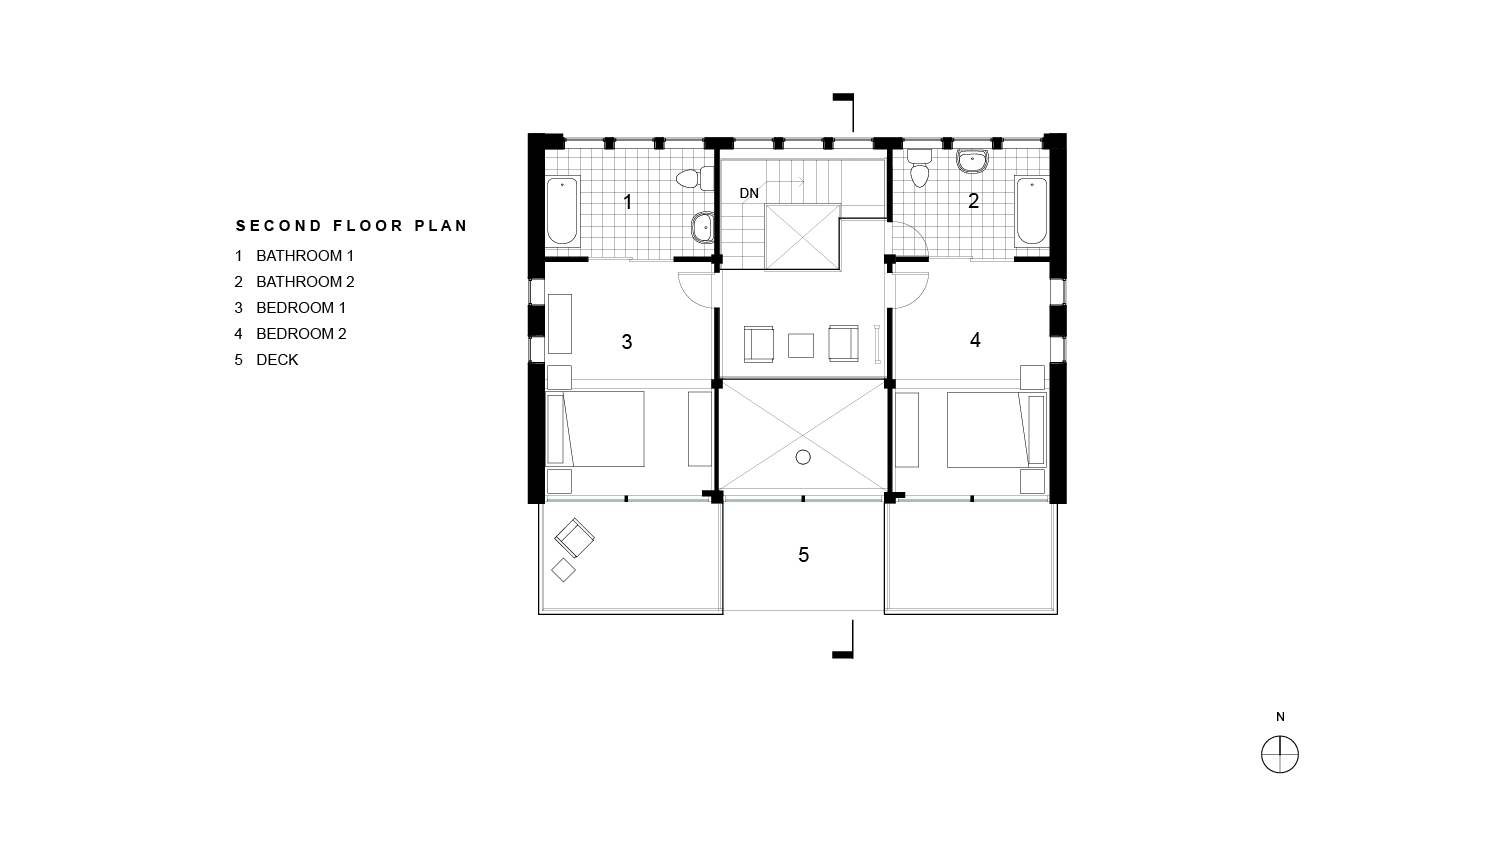 Mullane Residence Second Floor Plan